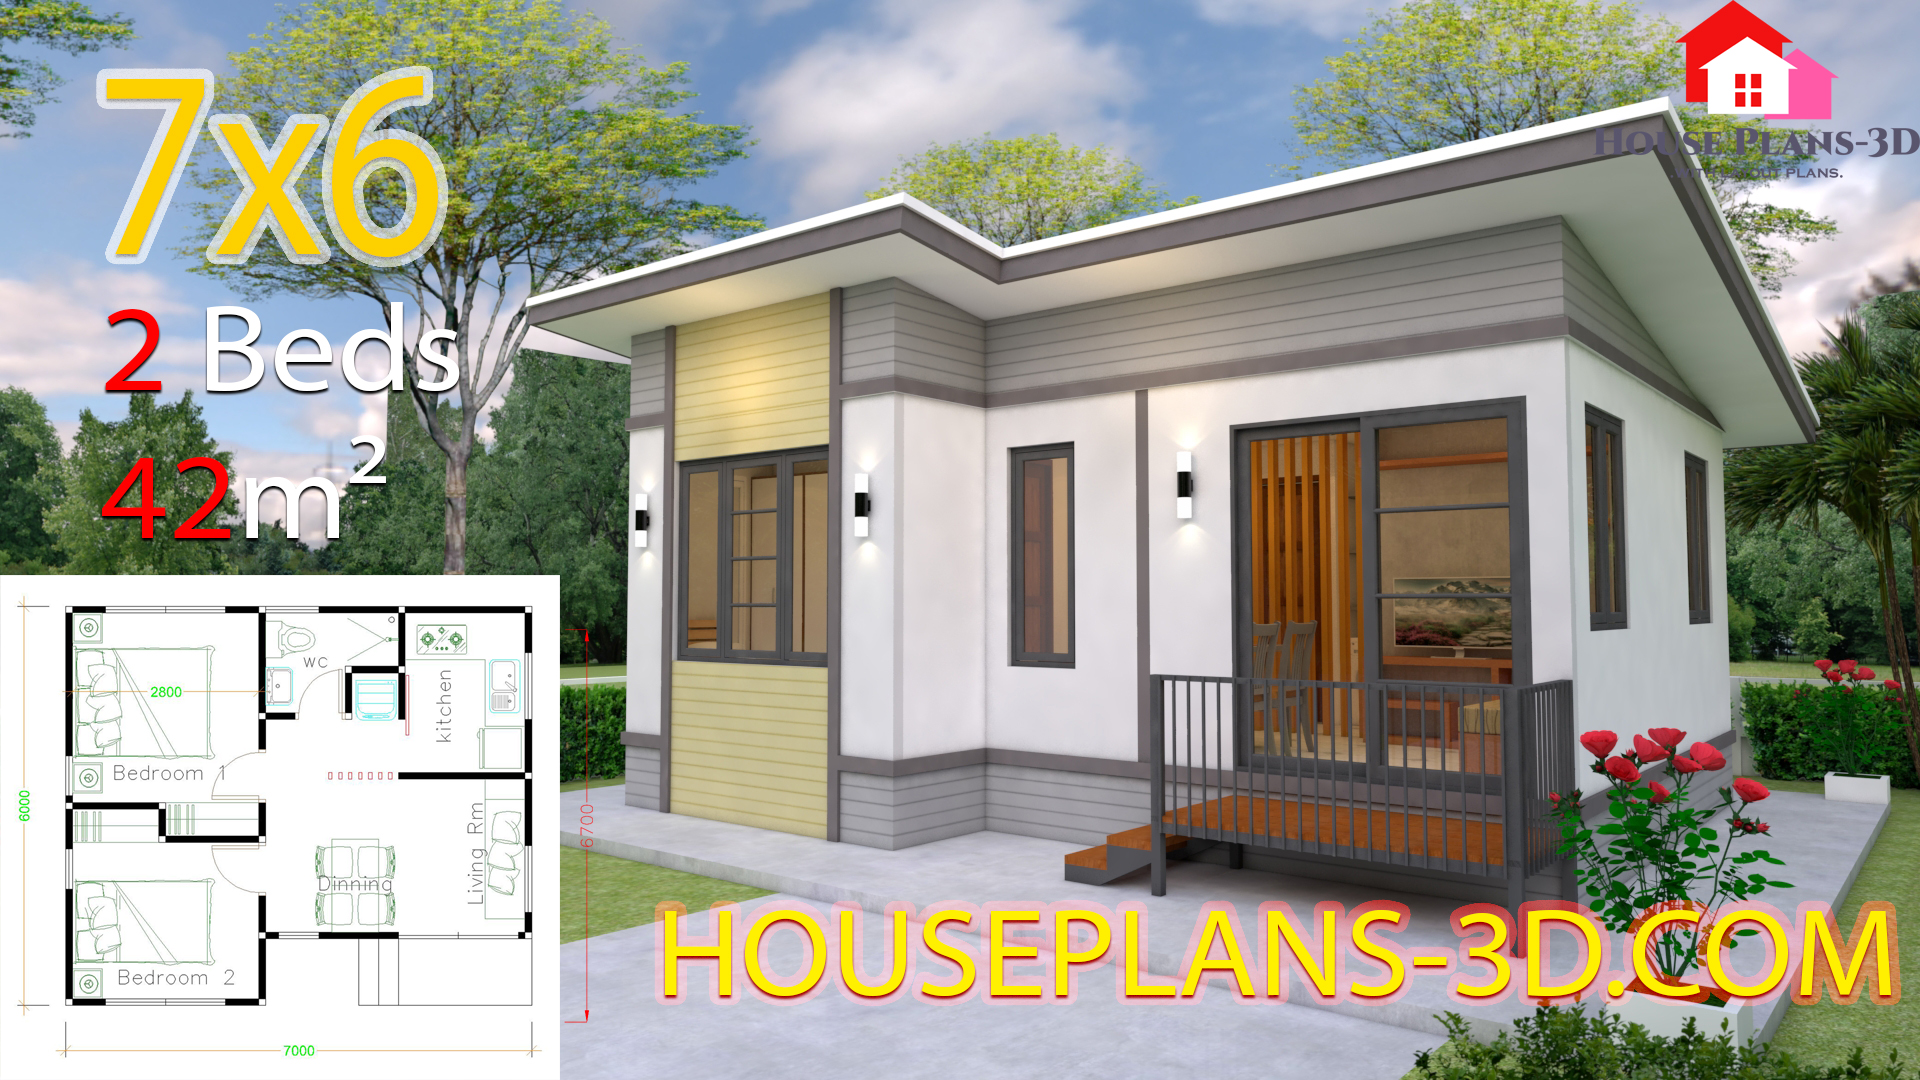 Small House plans 7x6 with 2 Bedrooms - 22+ Small House Design 2 Bedroom  Background